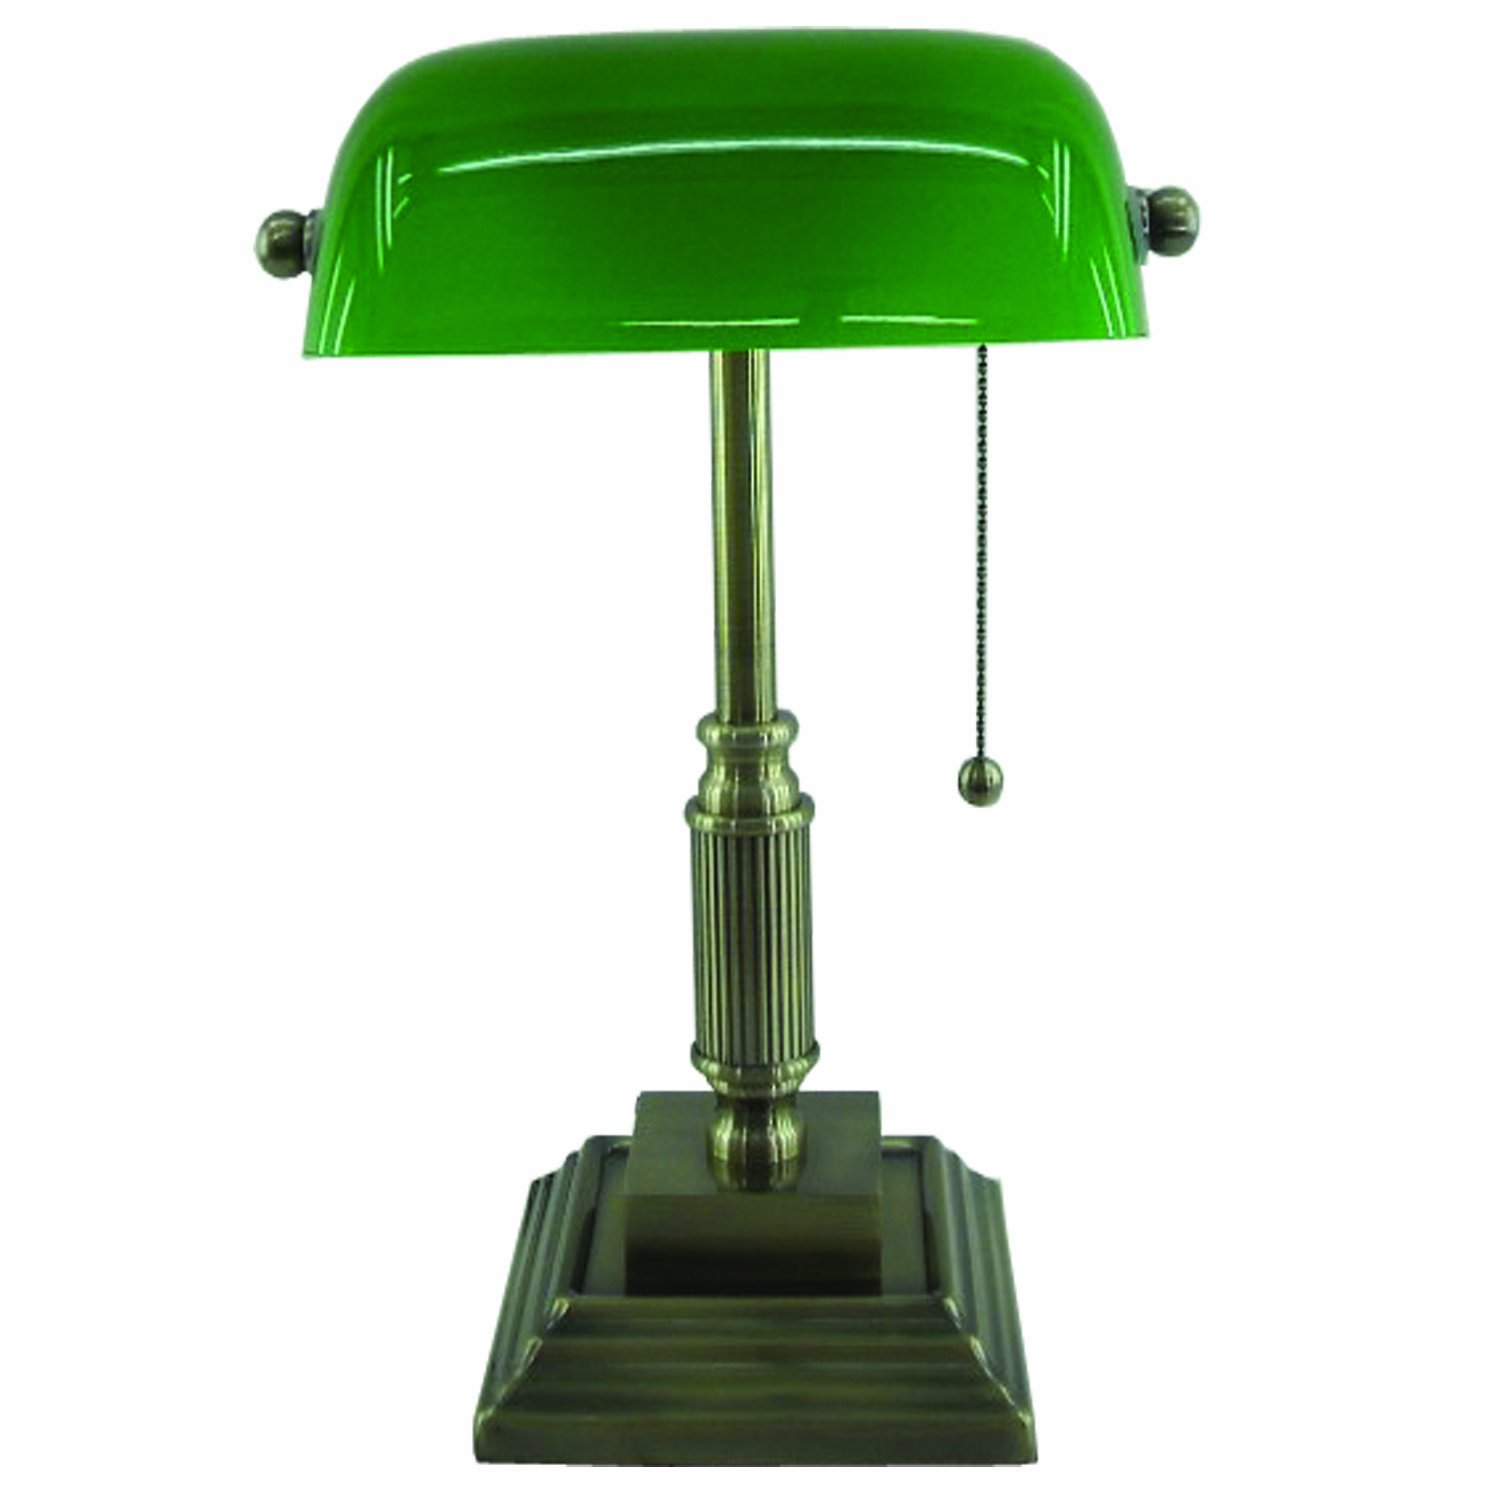 Normande Lighting AM3 624A Compact Fluorescent Bankeru0027s Lamp   Table Lamps    Amazon.com